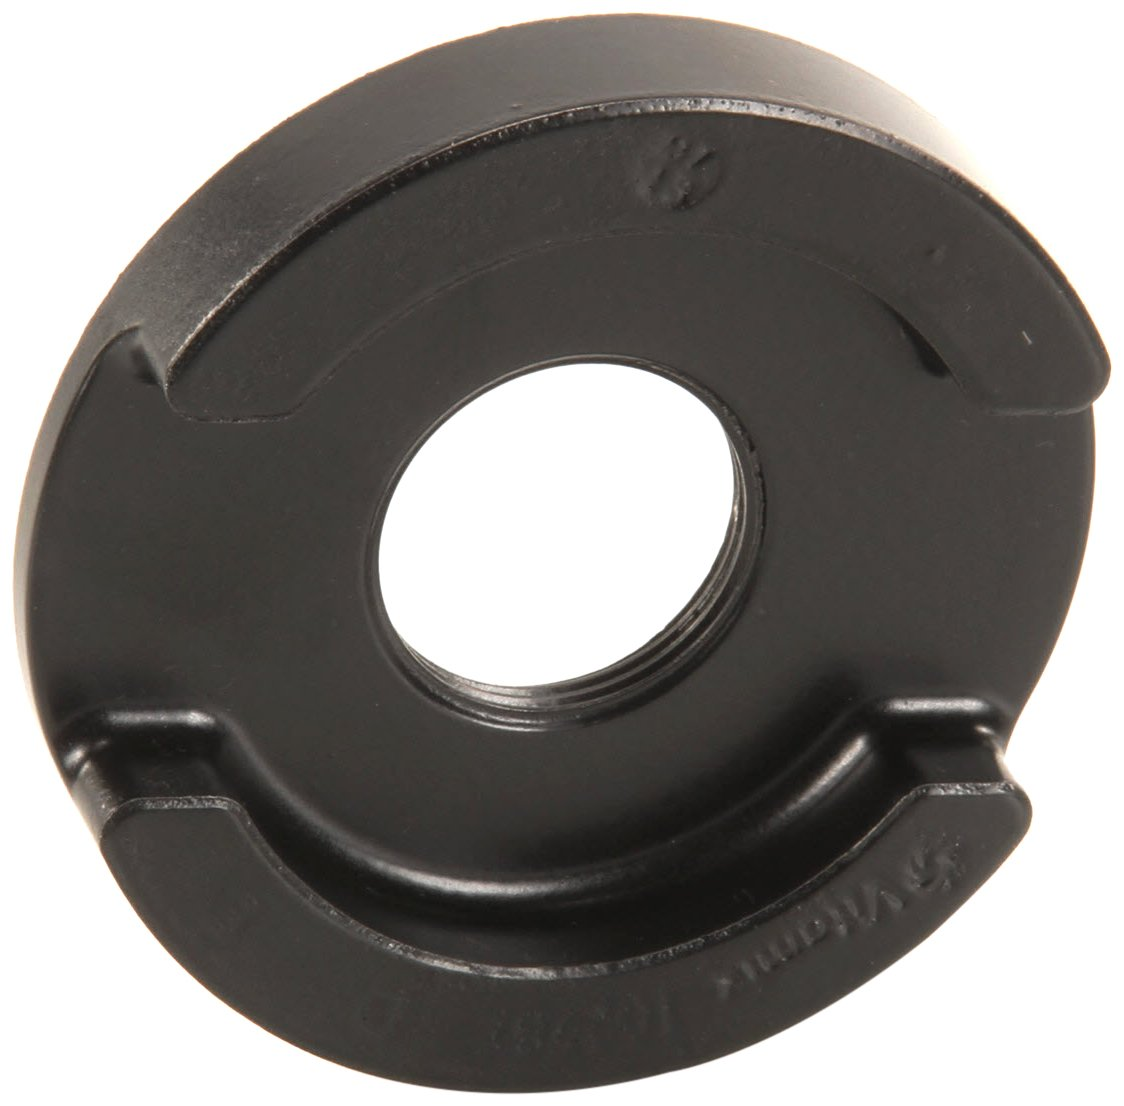 Vita-Mix 000836 Heavy Retainer Nut with O-Ring